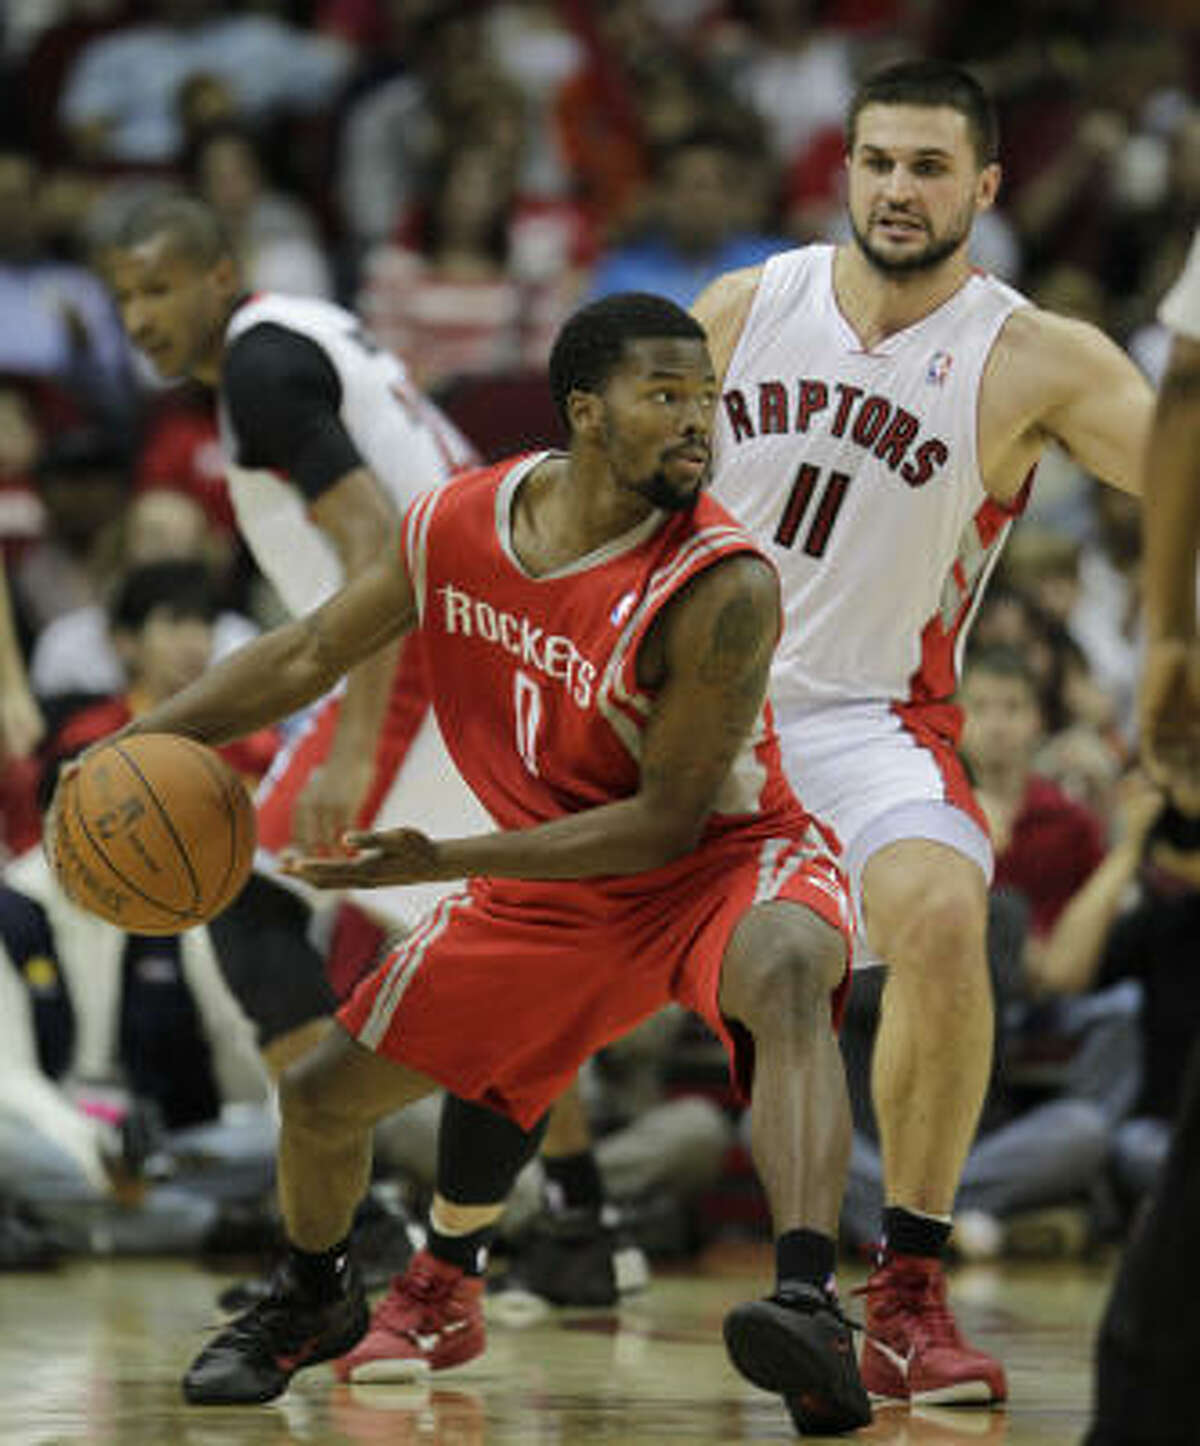 Dec. 31: Rockets 114, Raptors 105 Rockets guard Aaron Brooks (0) tries to pass against the defense of Toronto's Linas Kleiza during the first half of Friday's game at Toyota Center.